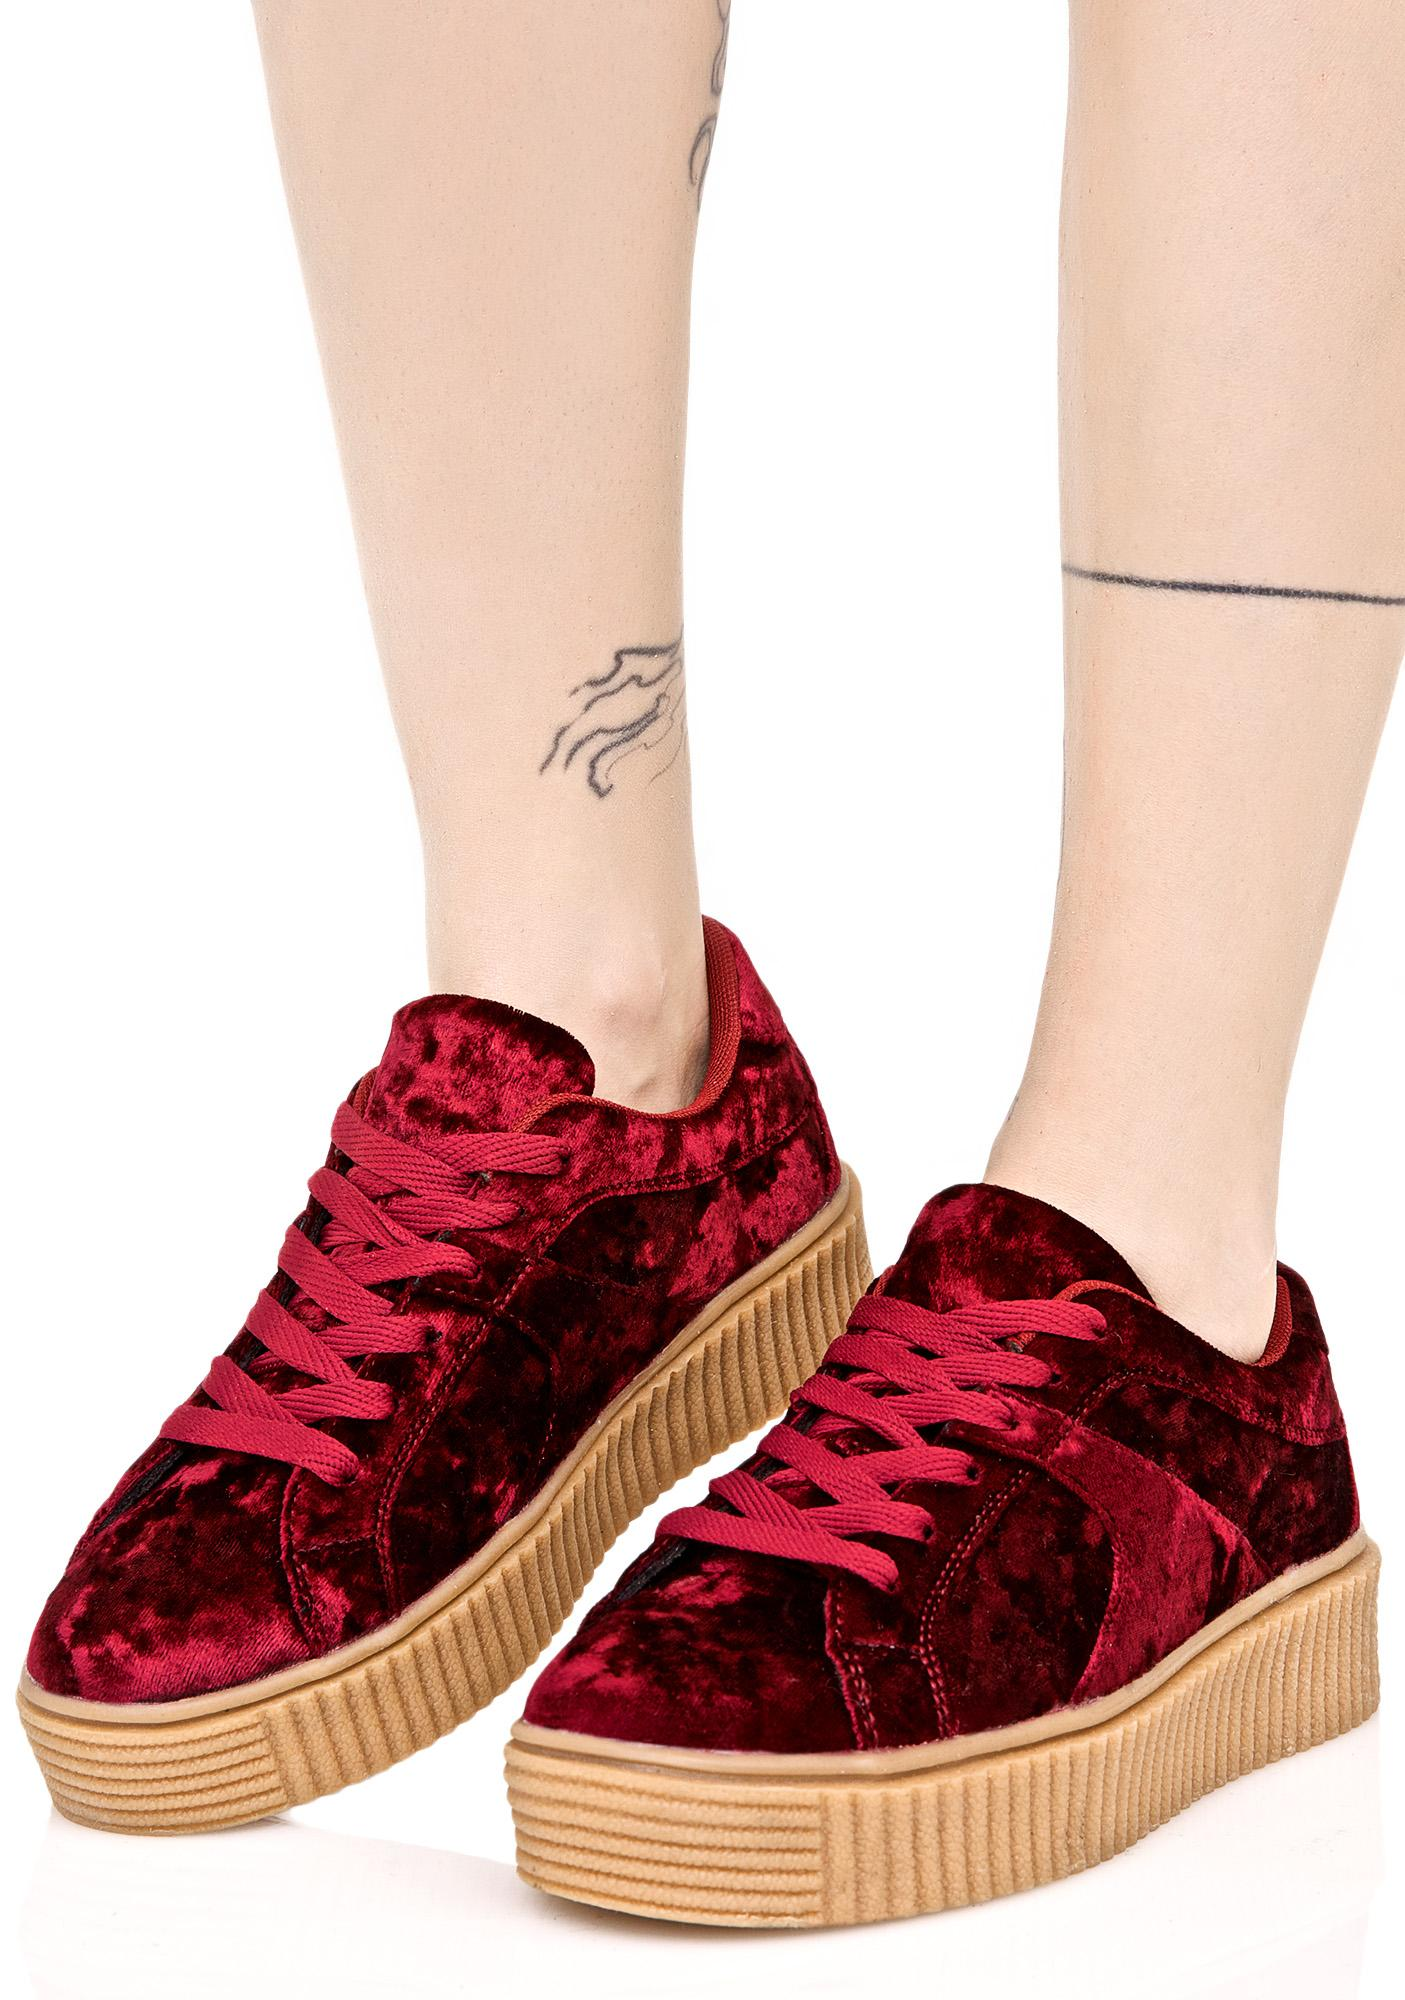 Crimson Doubt It Creeper Sneakers